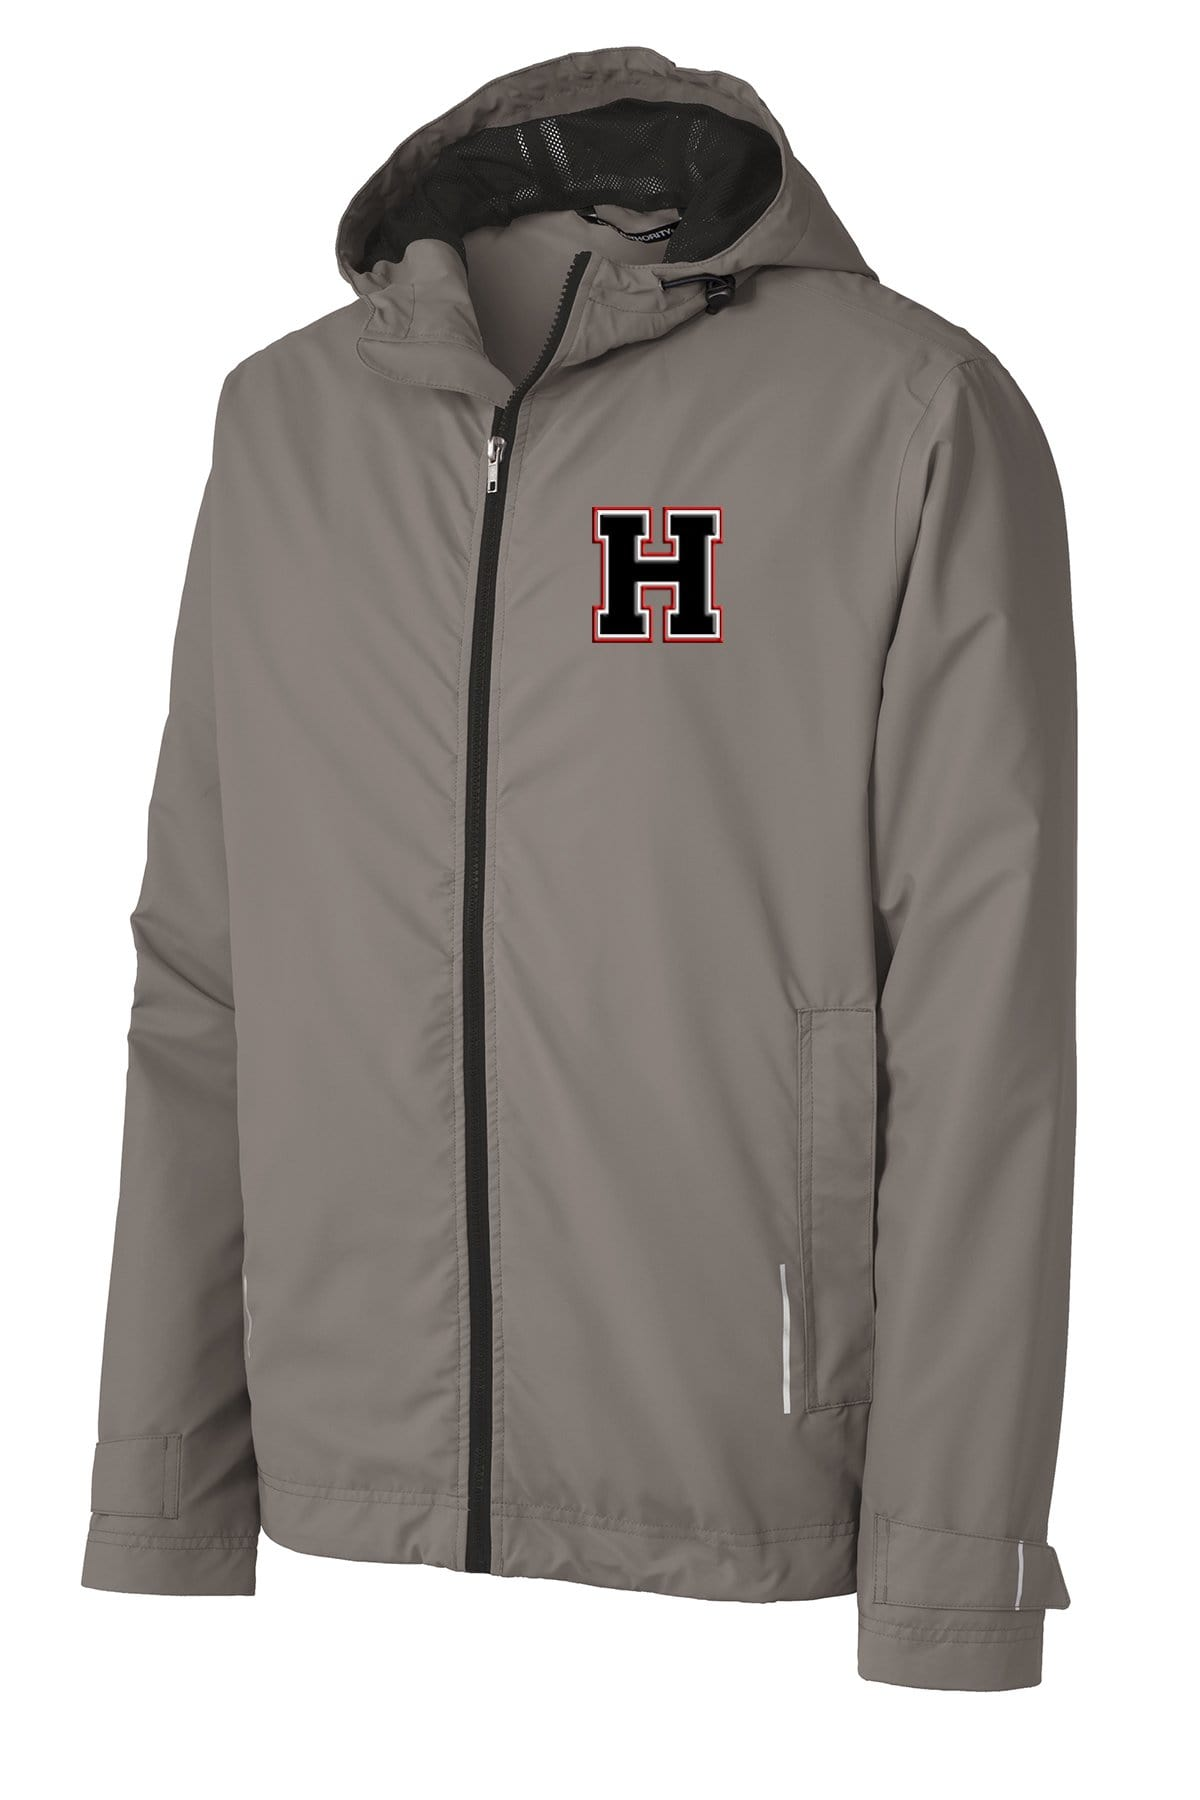 Heath Raincoat